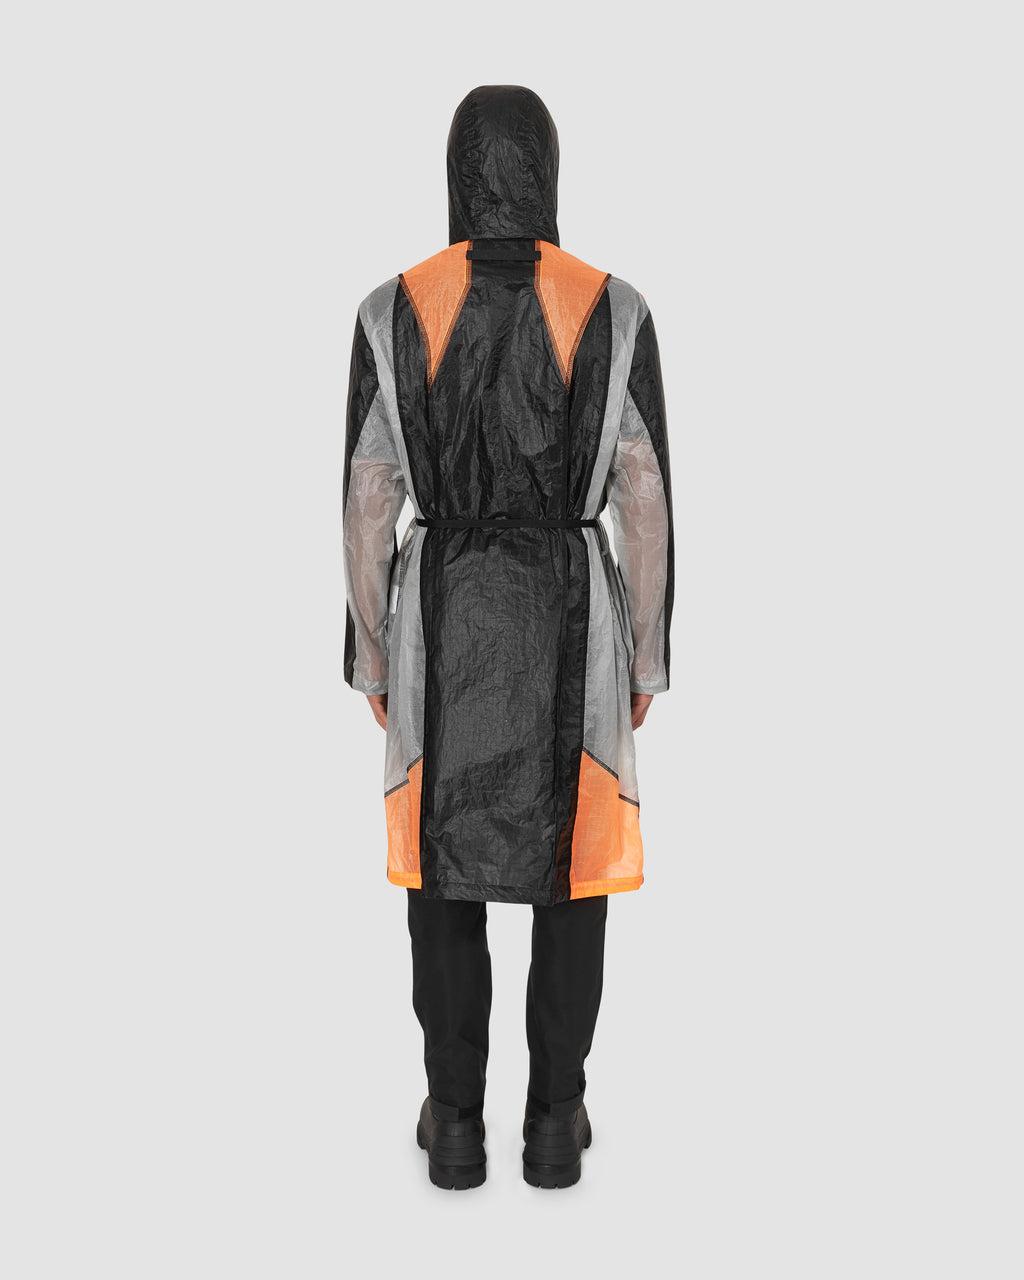 1017 ALYX 9SM | MONCLER COSMOS JACKET | Outerwear | Google Shopping, GREY/ORANGE/BLACK, Man, Moncler, OUTERWEAR, S20, UNISEX